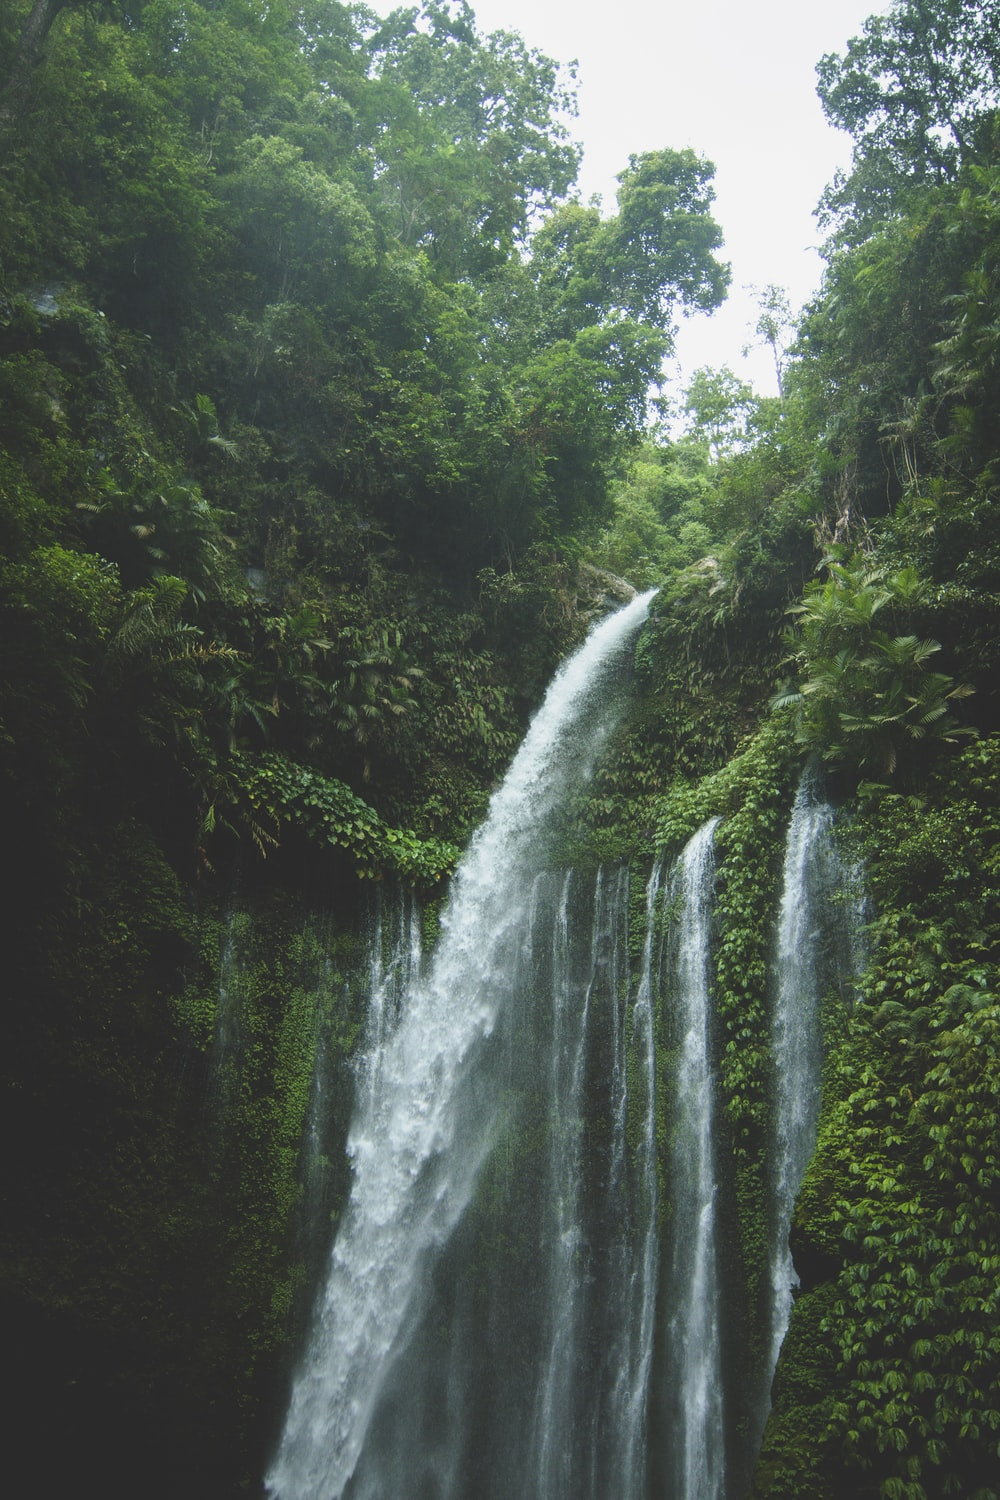 view of waterfall during daytime